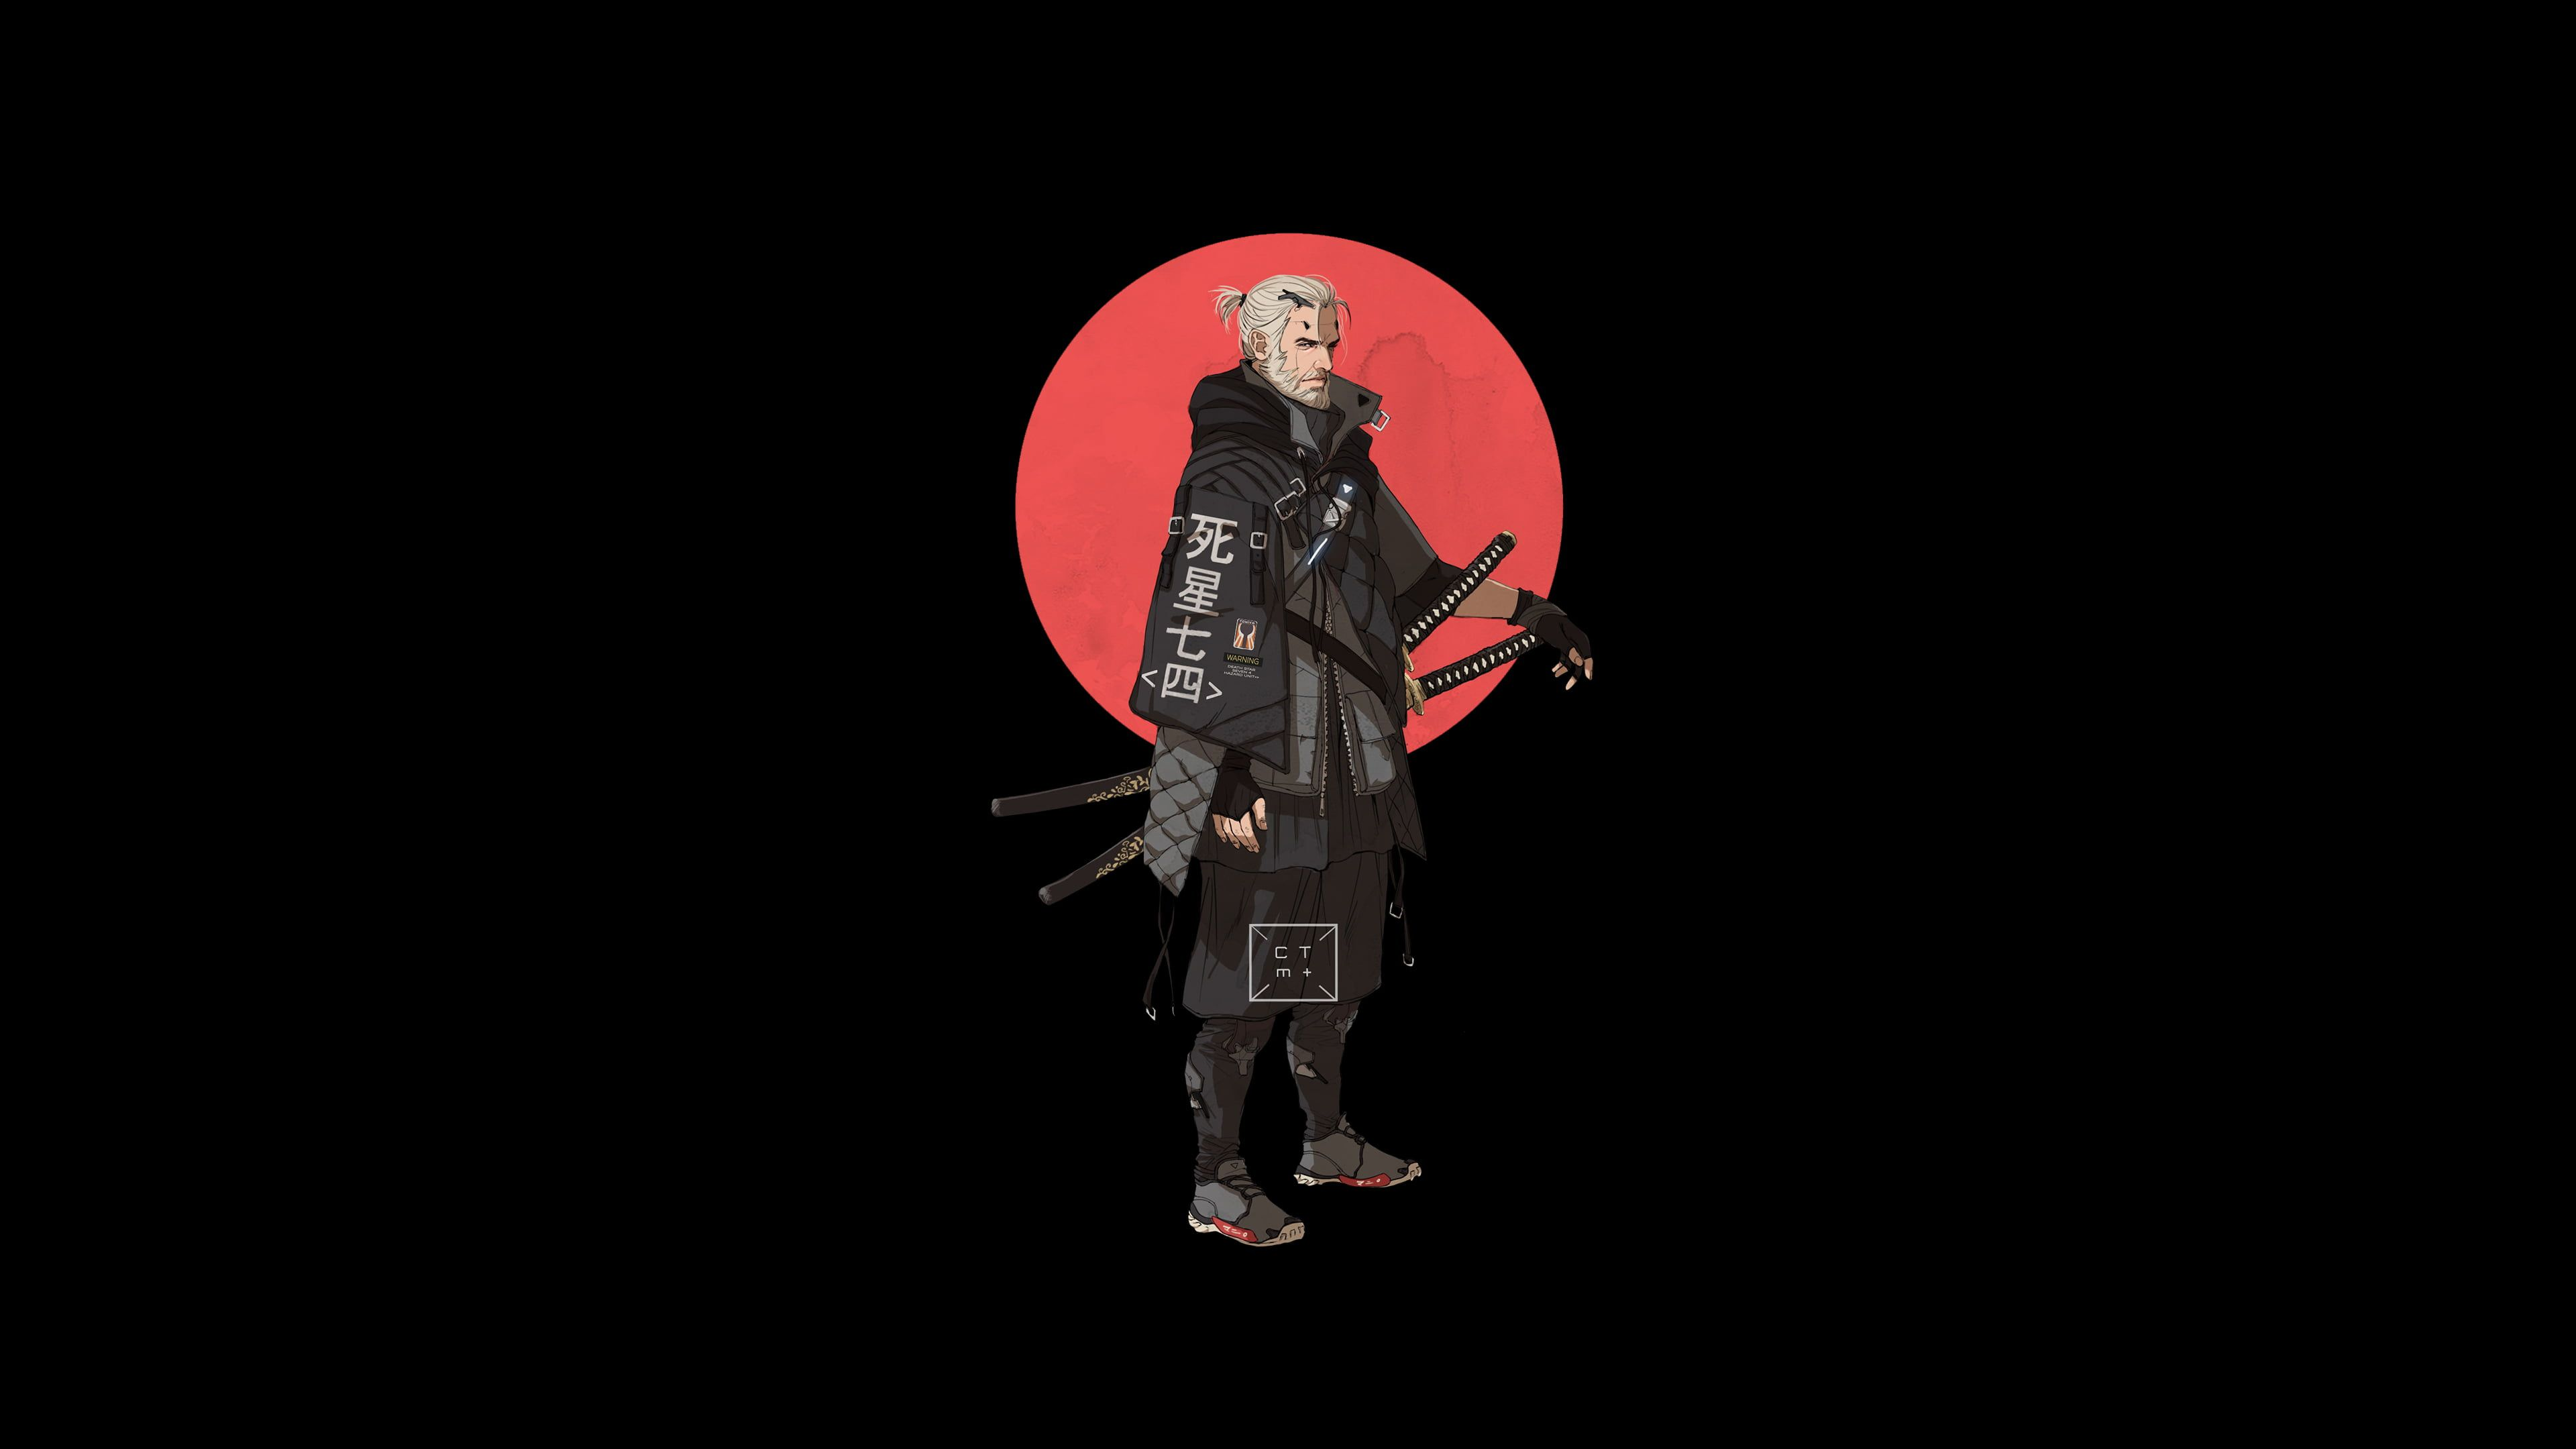 Hd Wallpaper The Witcher Japanese Characters Katana Geralt Of Rivia Aestethic In 2020 Japanese Characters The Witcher Wallpaper